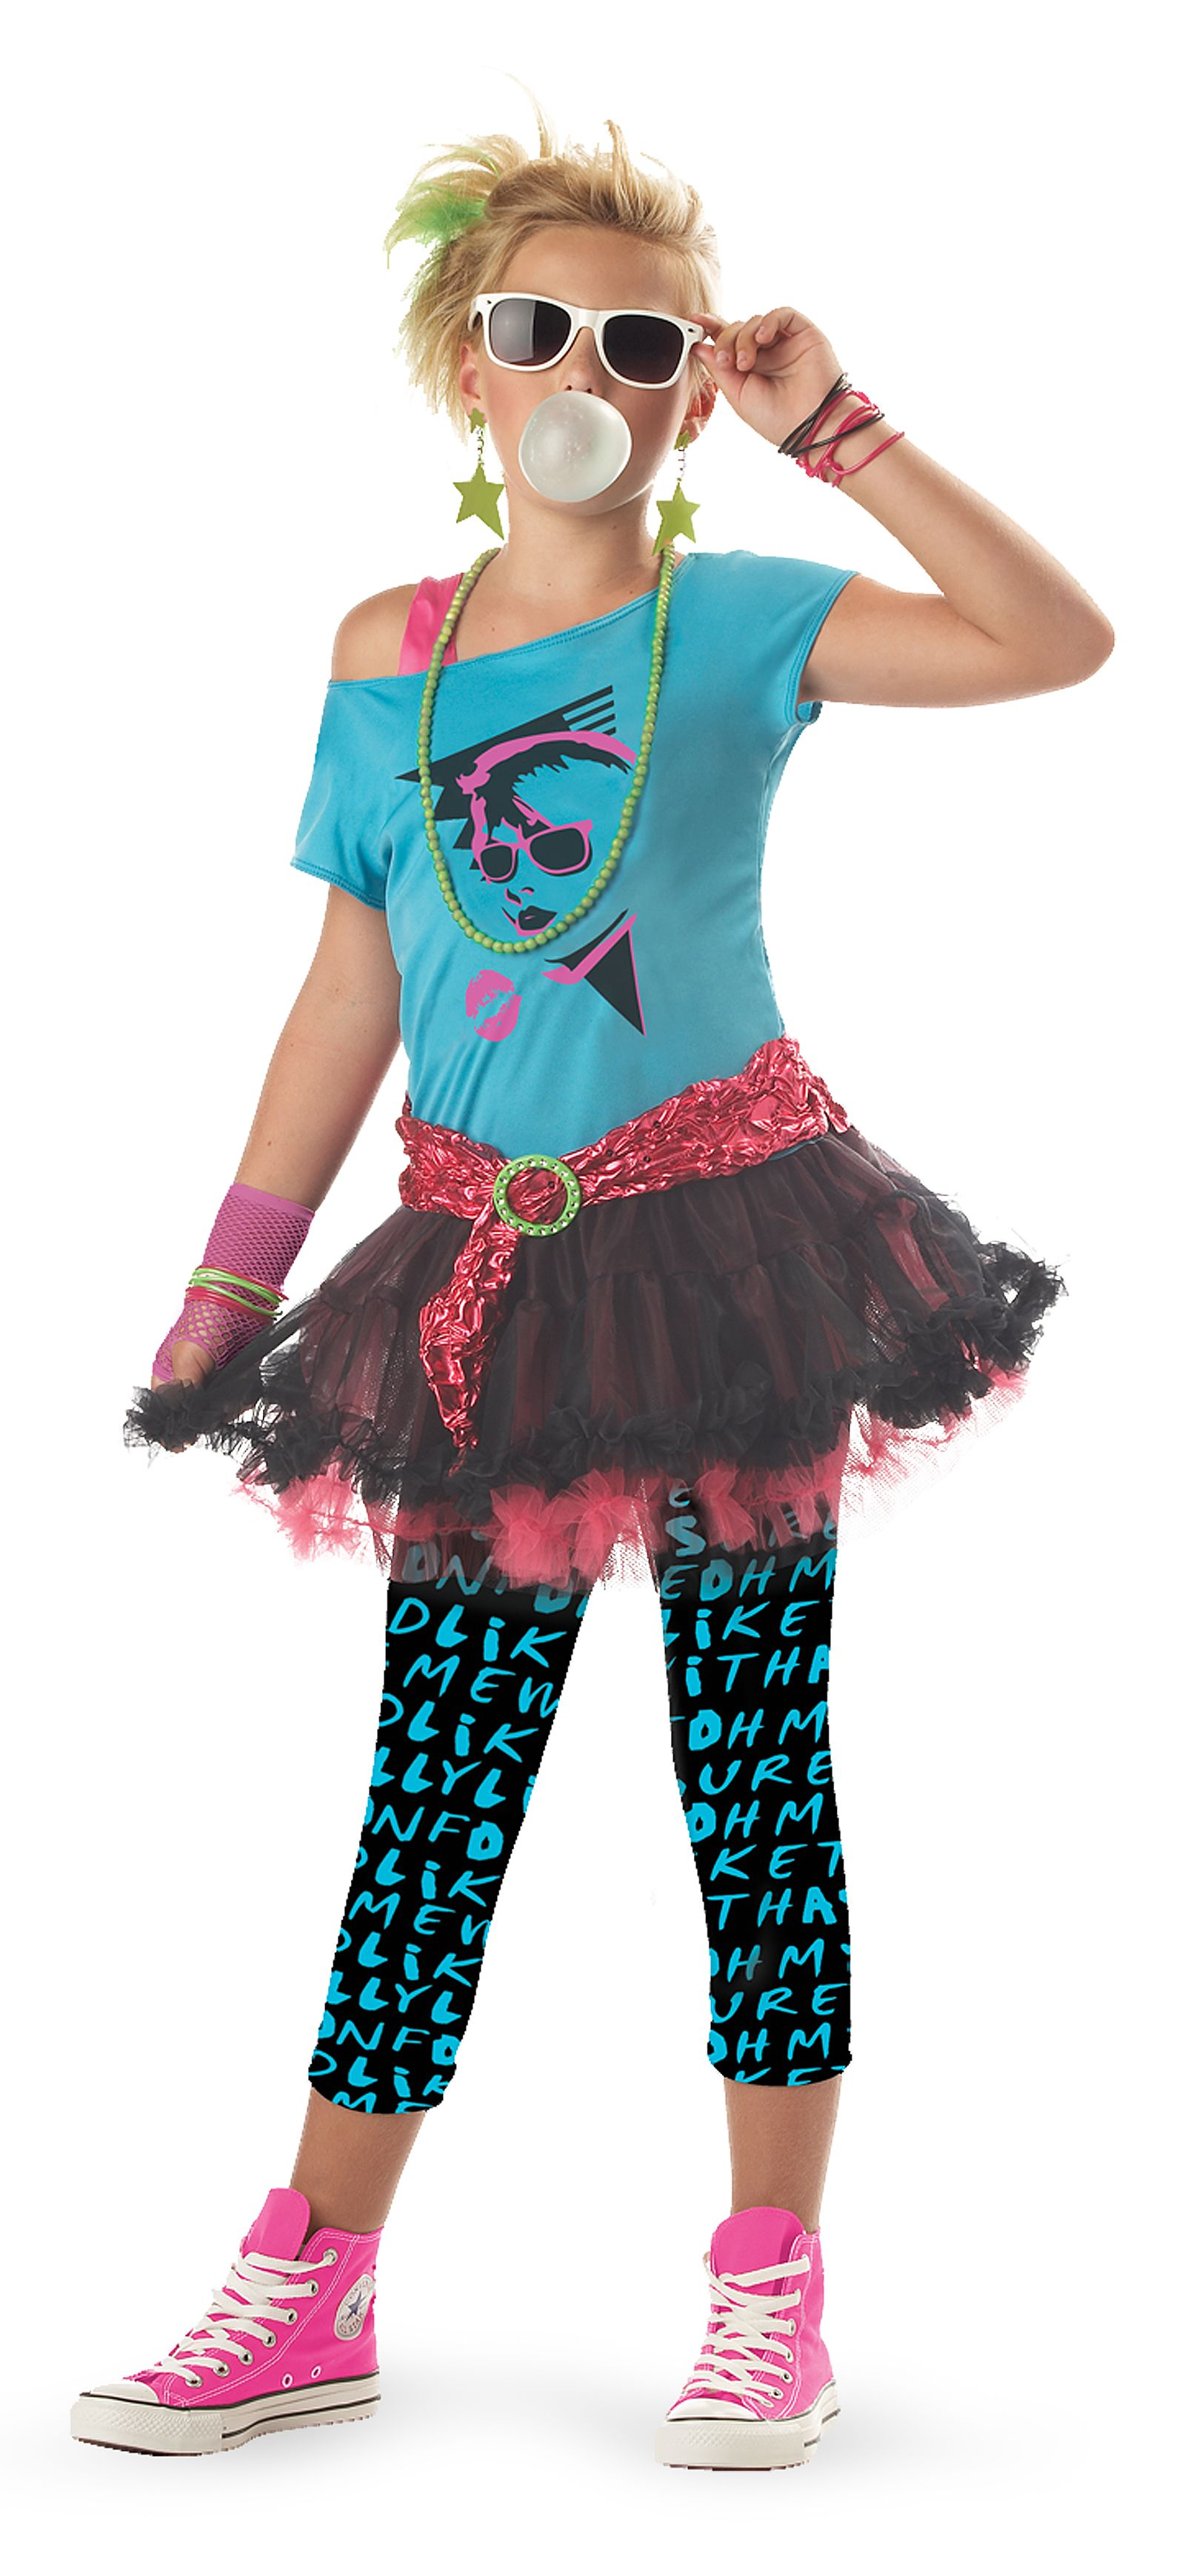 This totally awesome valley girl costume features a blue off the shoulder top with an face screen print on the chest one hot pink strap and an attached